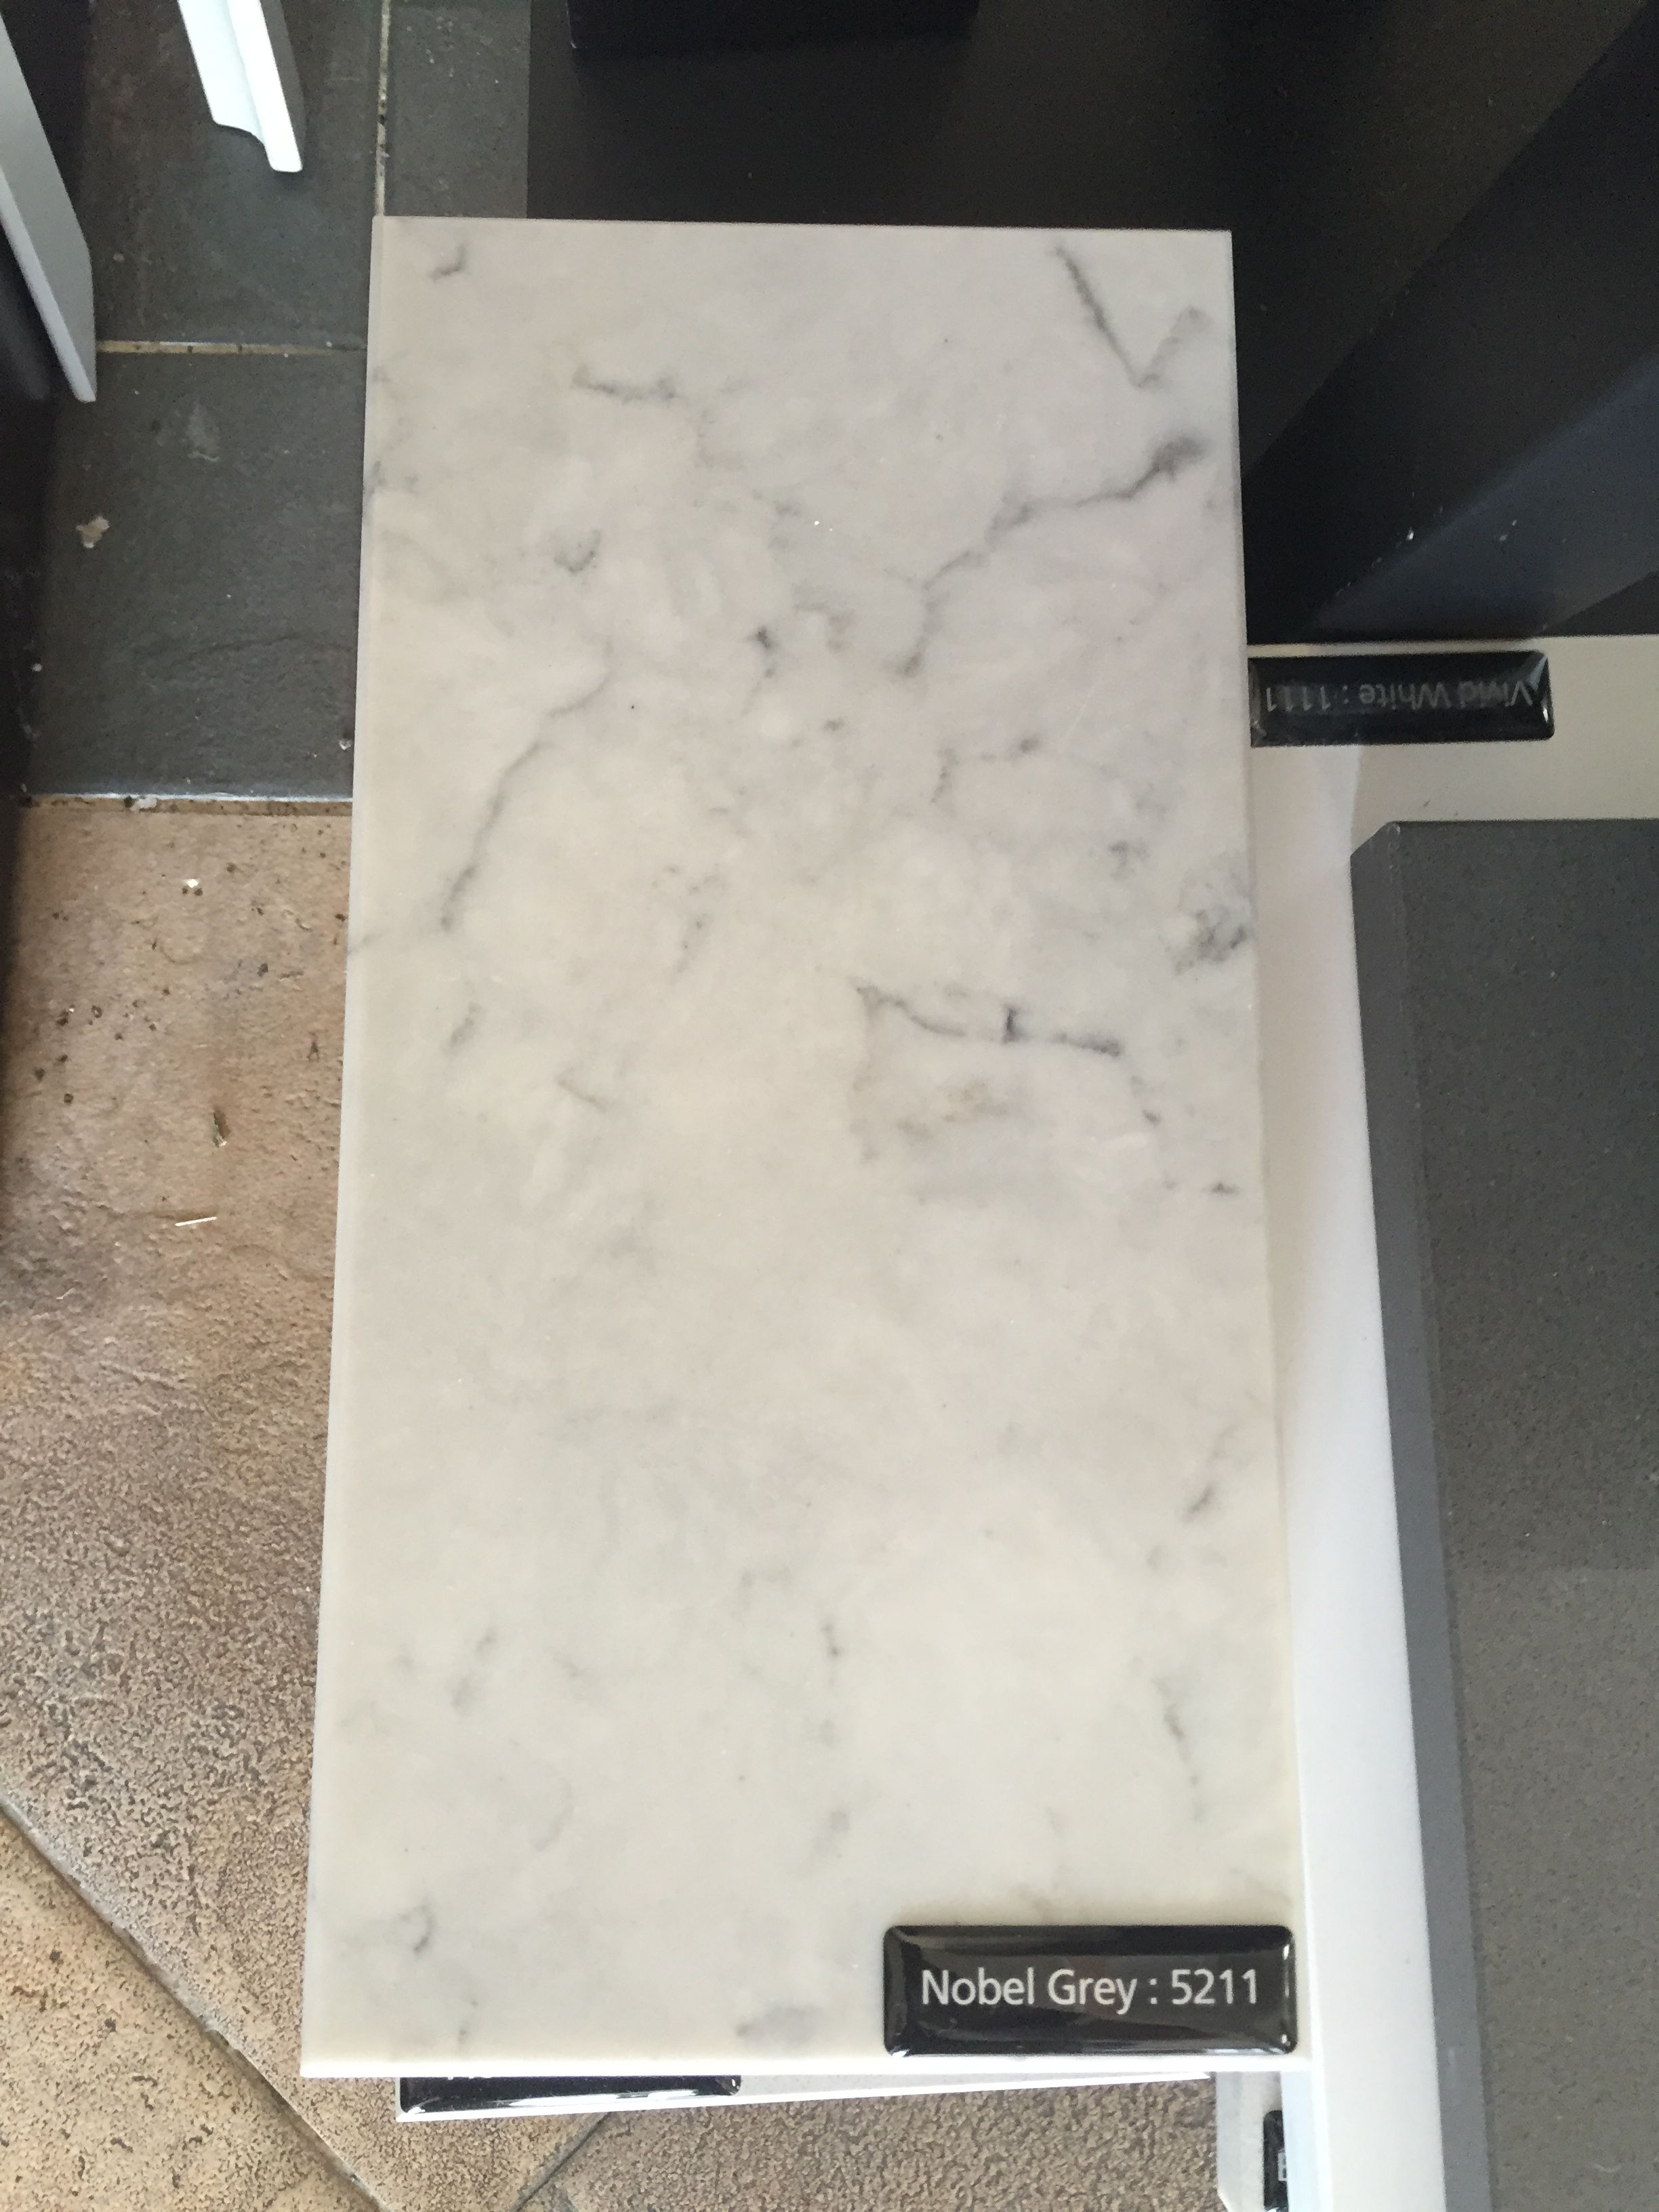 Caesarstone marble look alike countertop with potential although